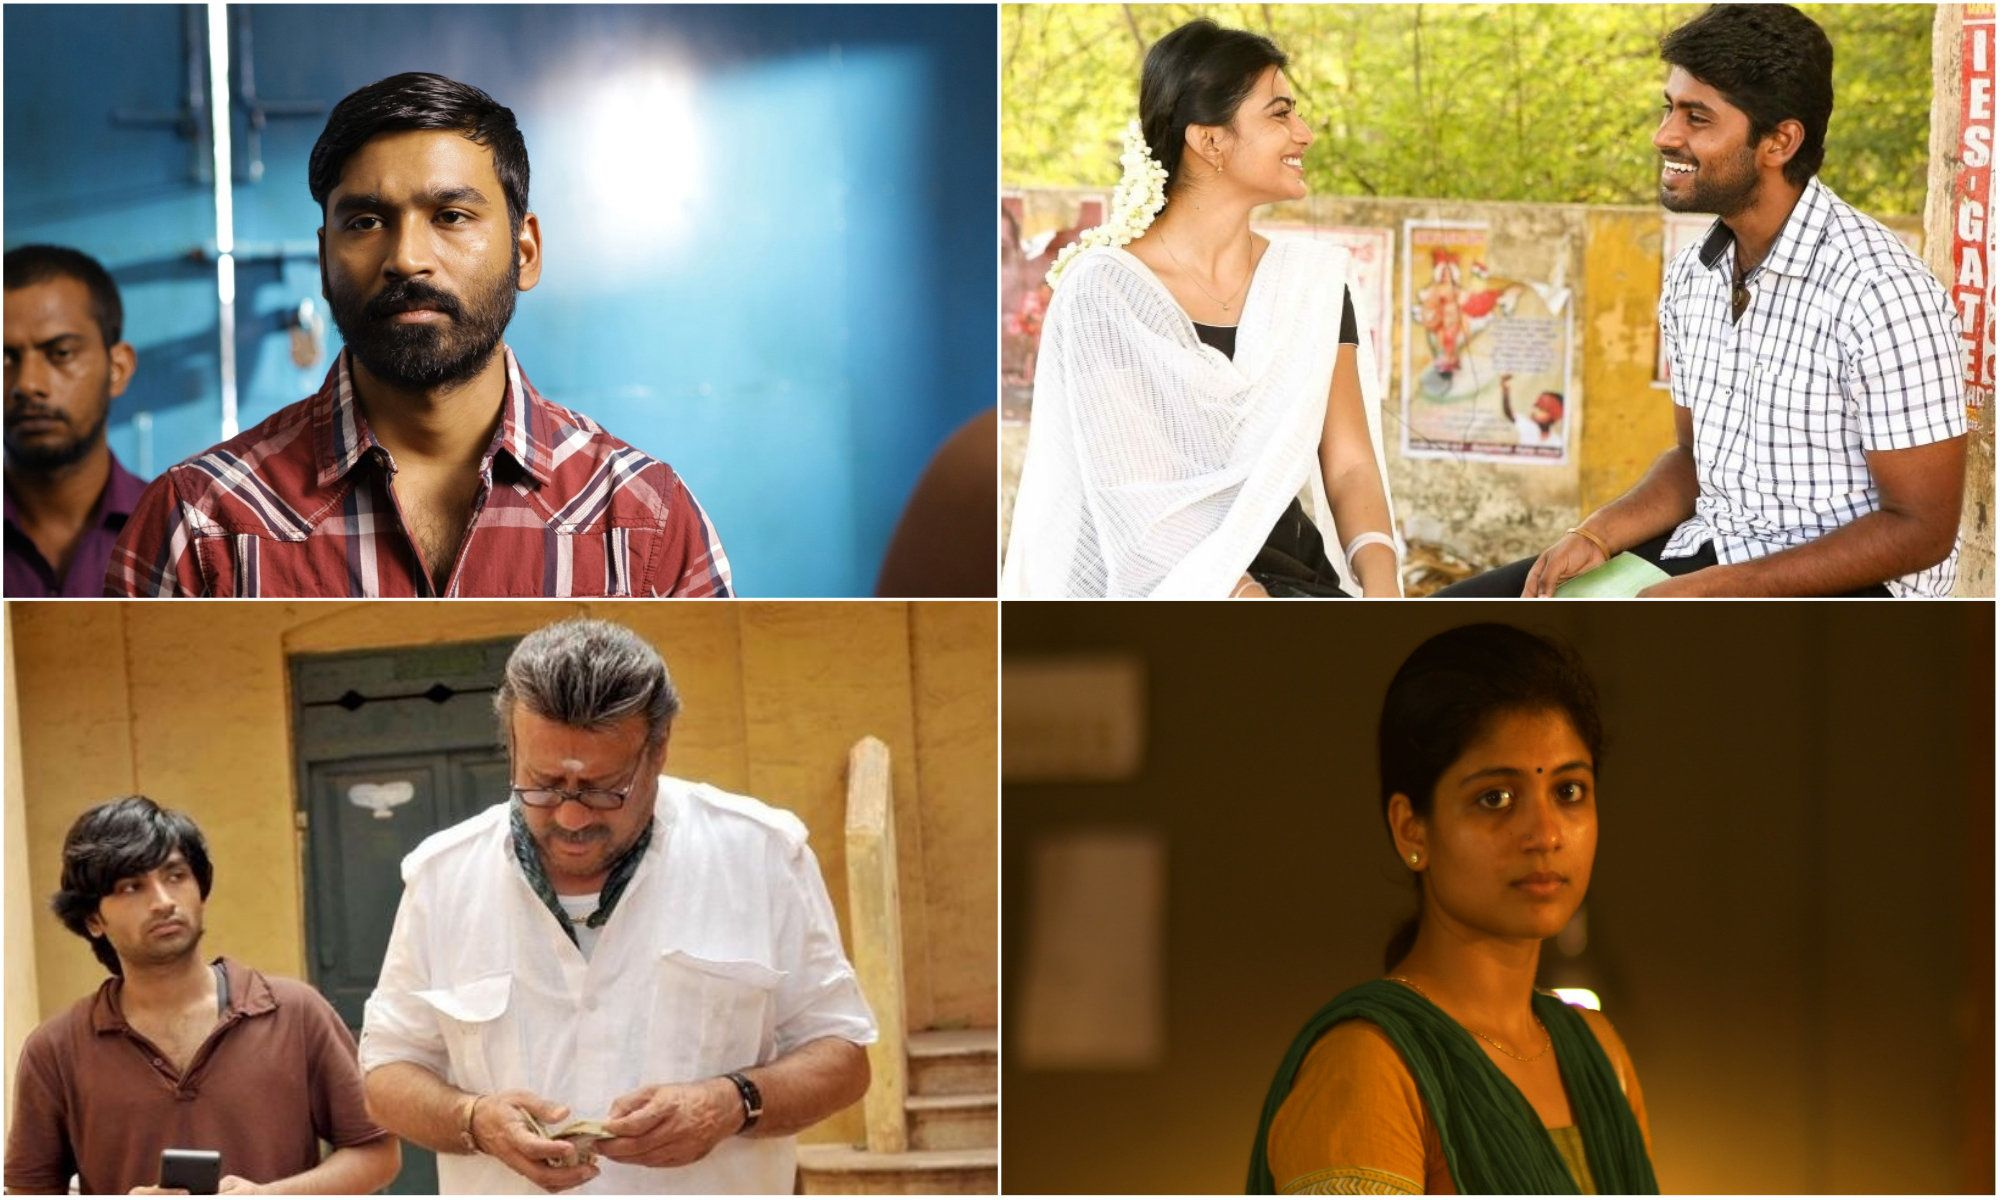 The 10 Best Tamil Films To Watch On Hotstar, Amazon Prime & Netflix Right